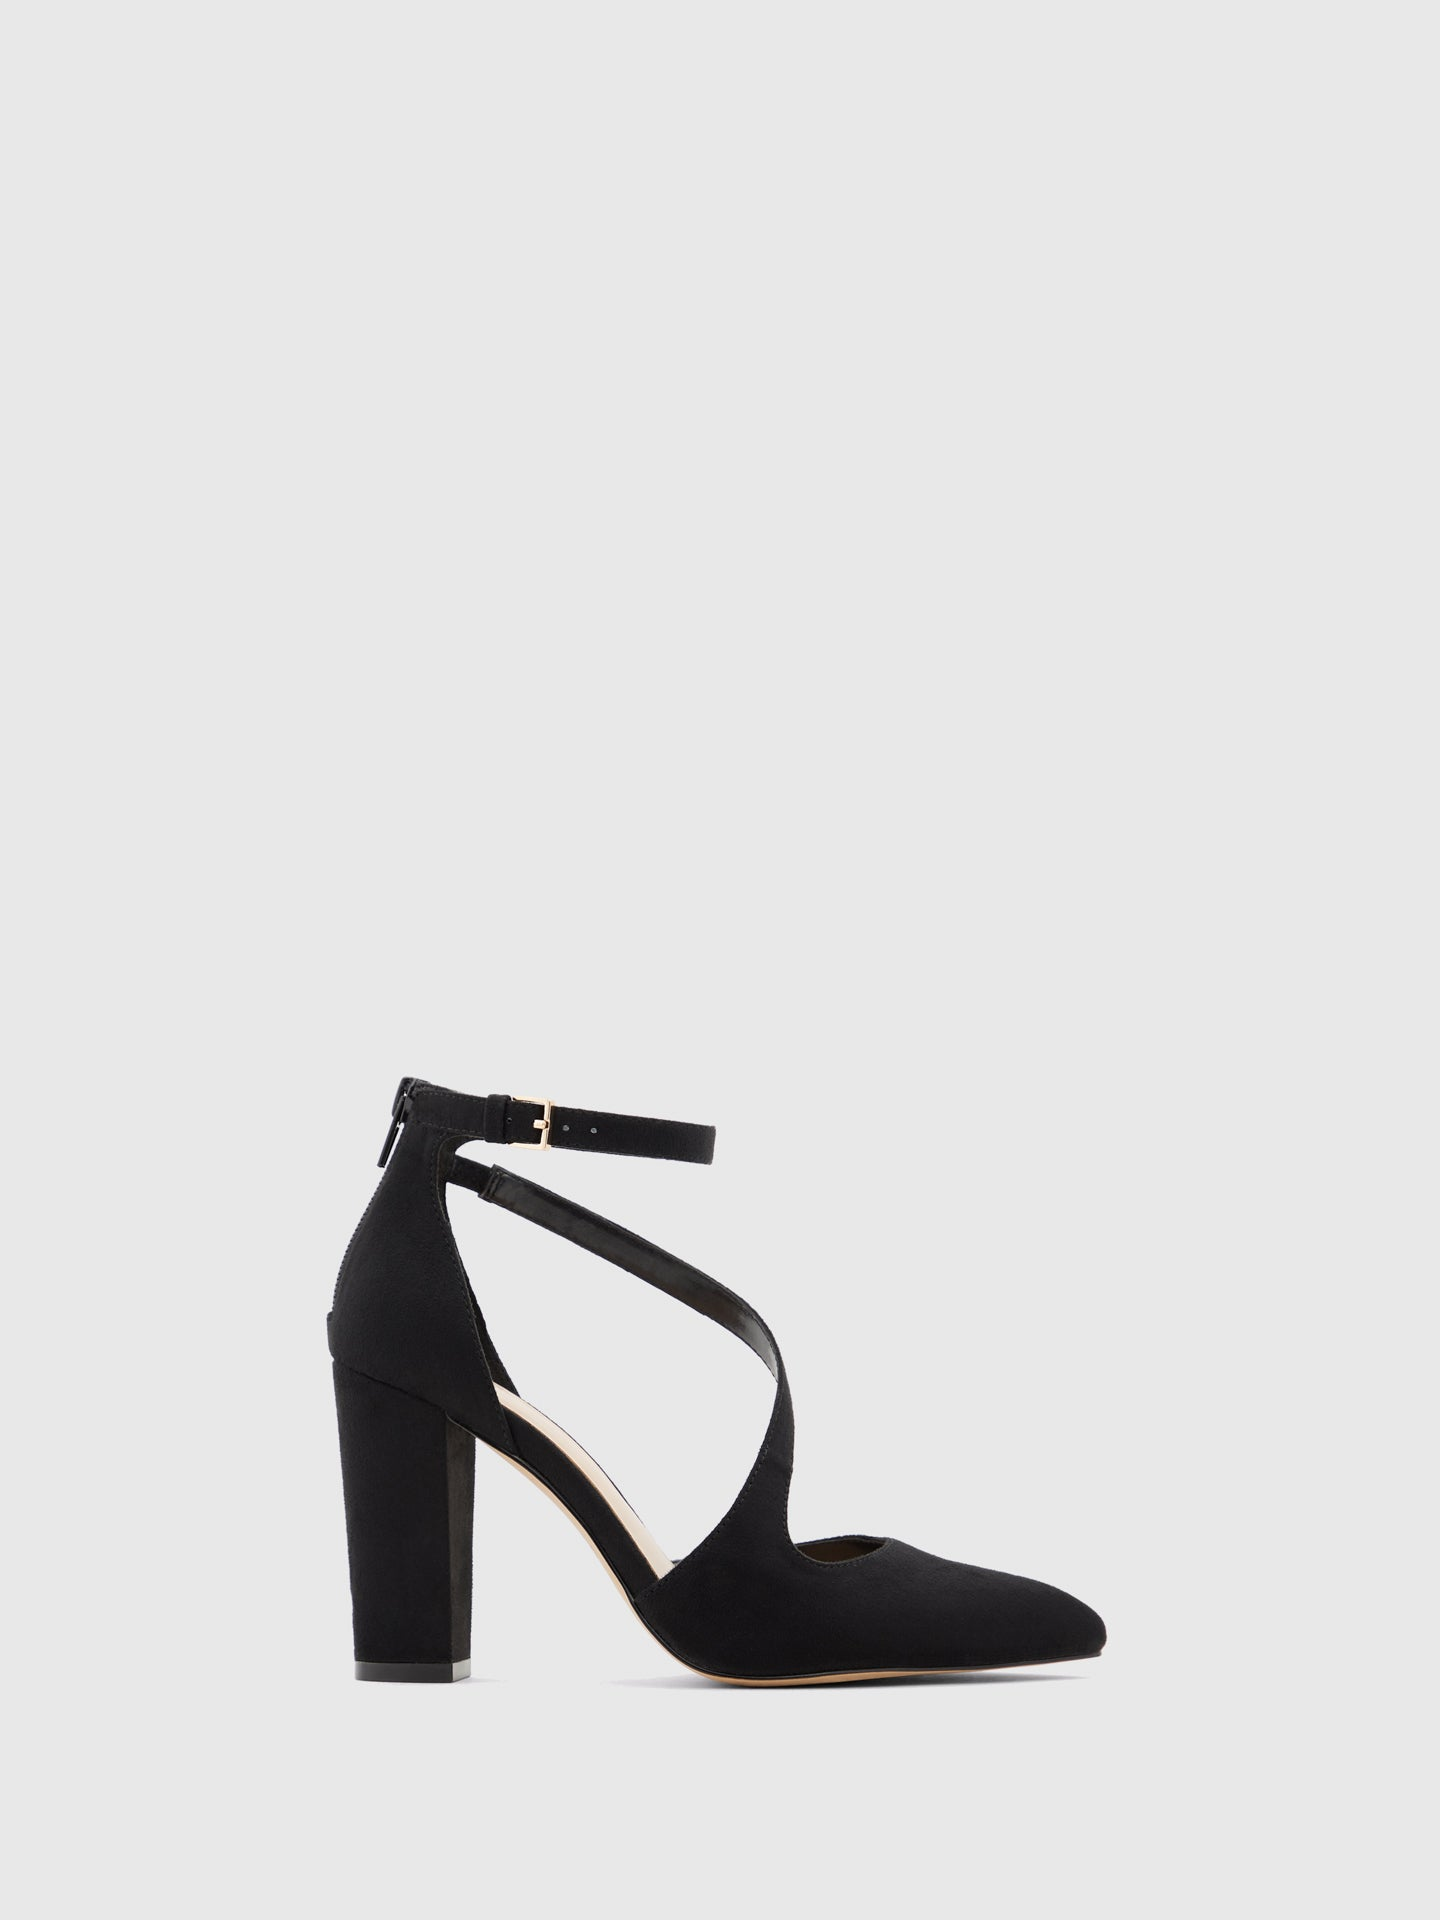 Aldo Black Ankle Strap Pumps